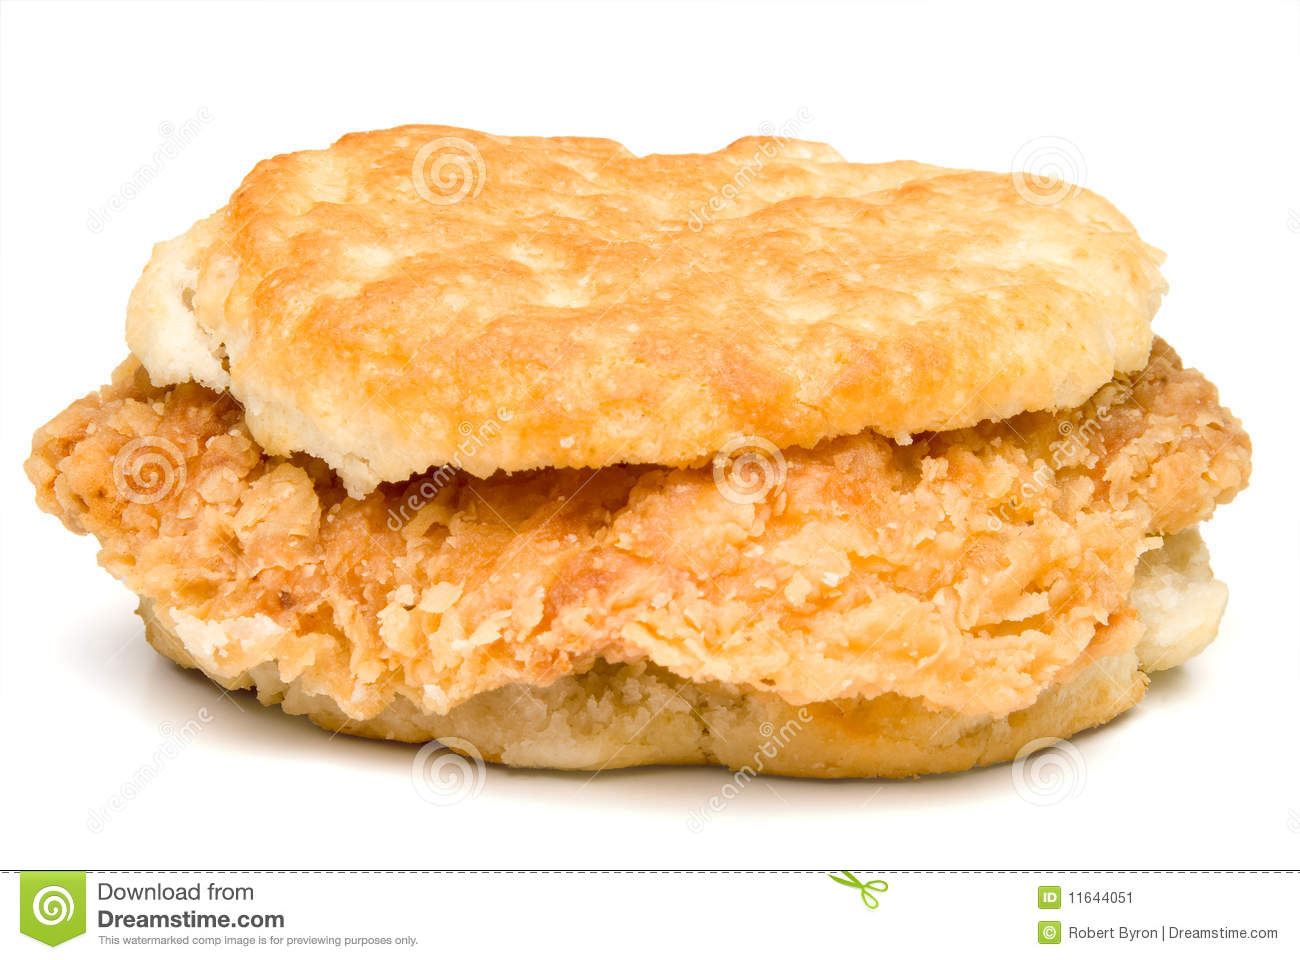 Chicken Biscuit Stock Image - Image: 11644051